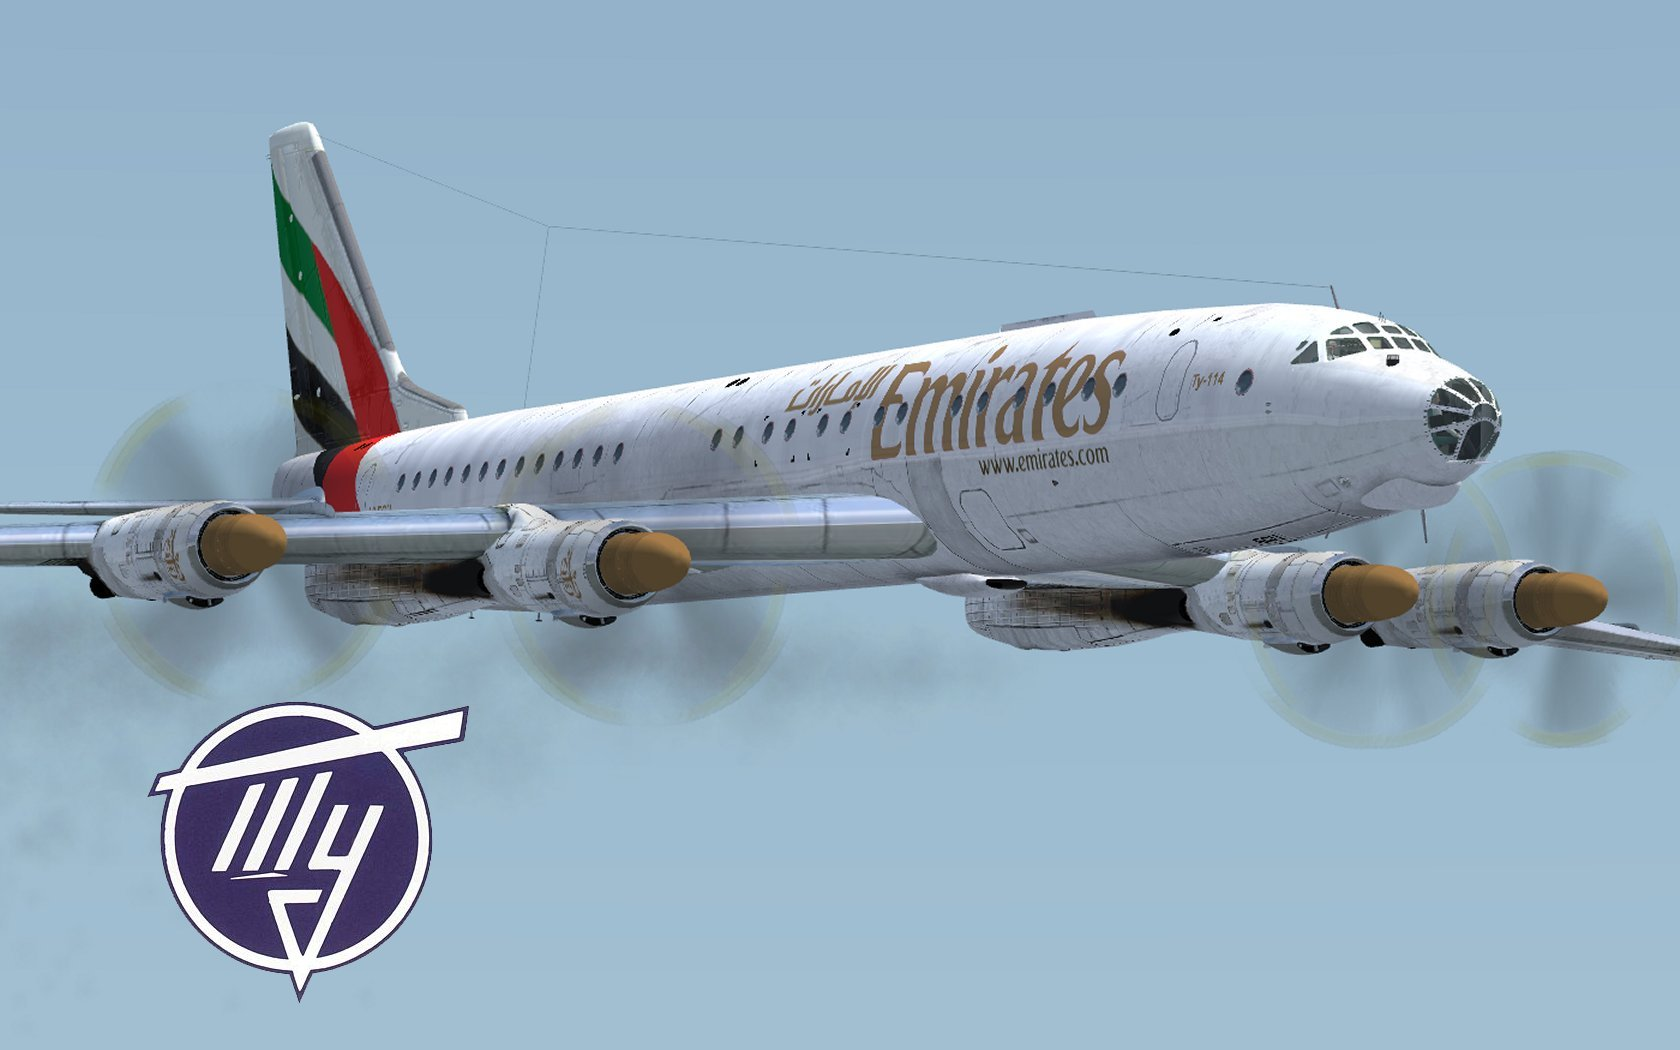 new entry has been added to Add-Ons Library, category FSX Skins